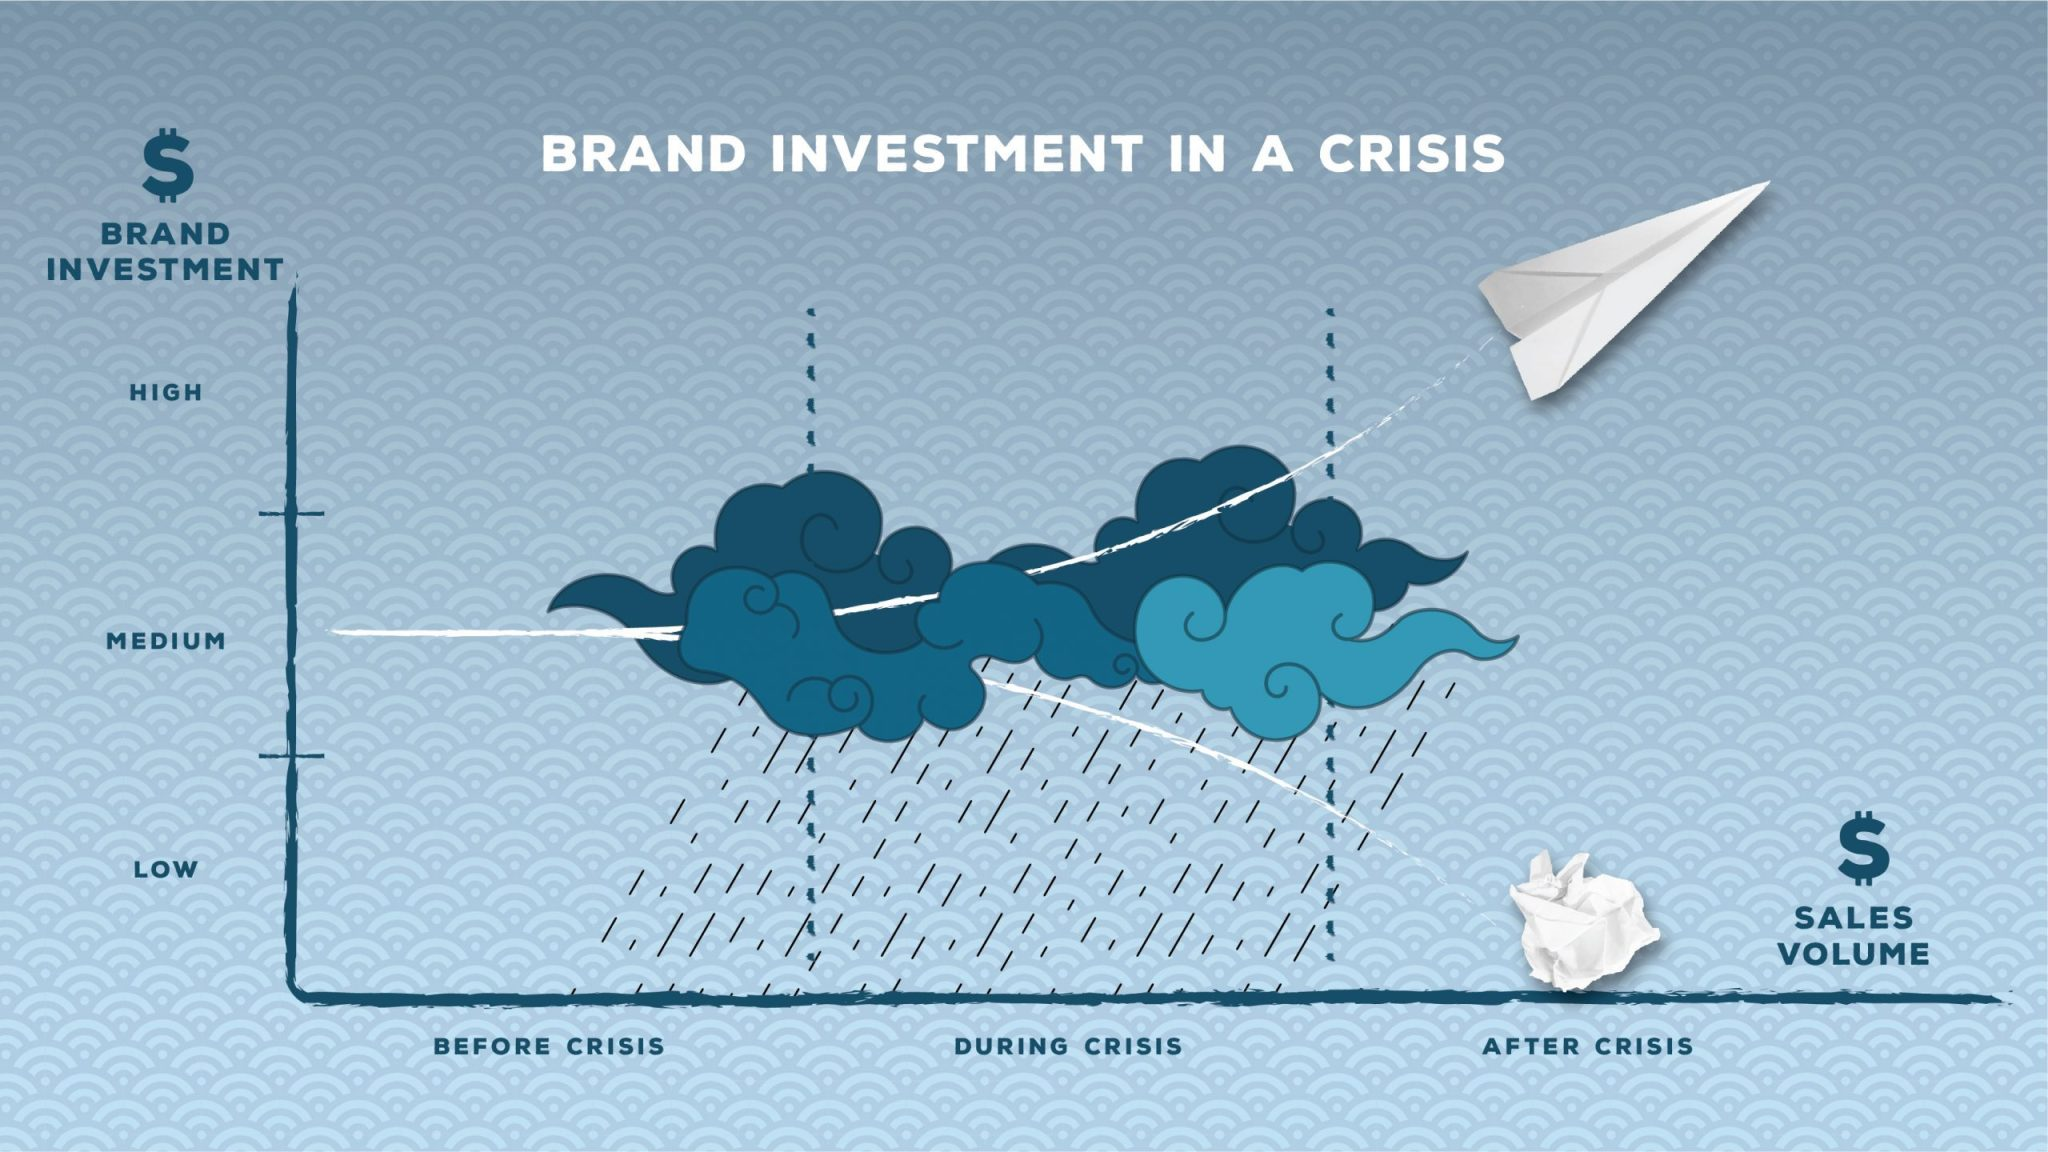 Brand Investment in a Crisis